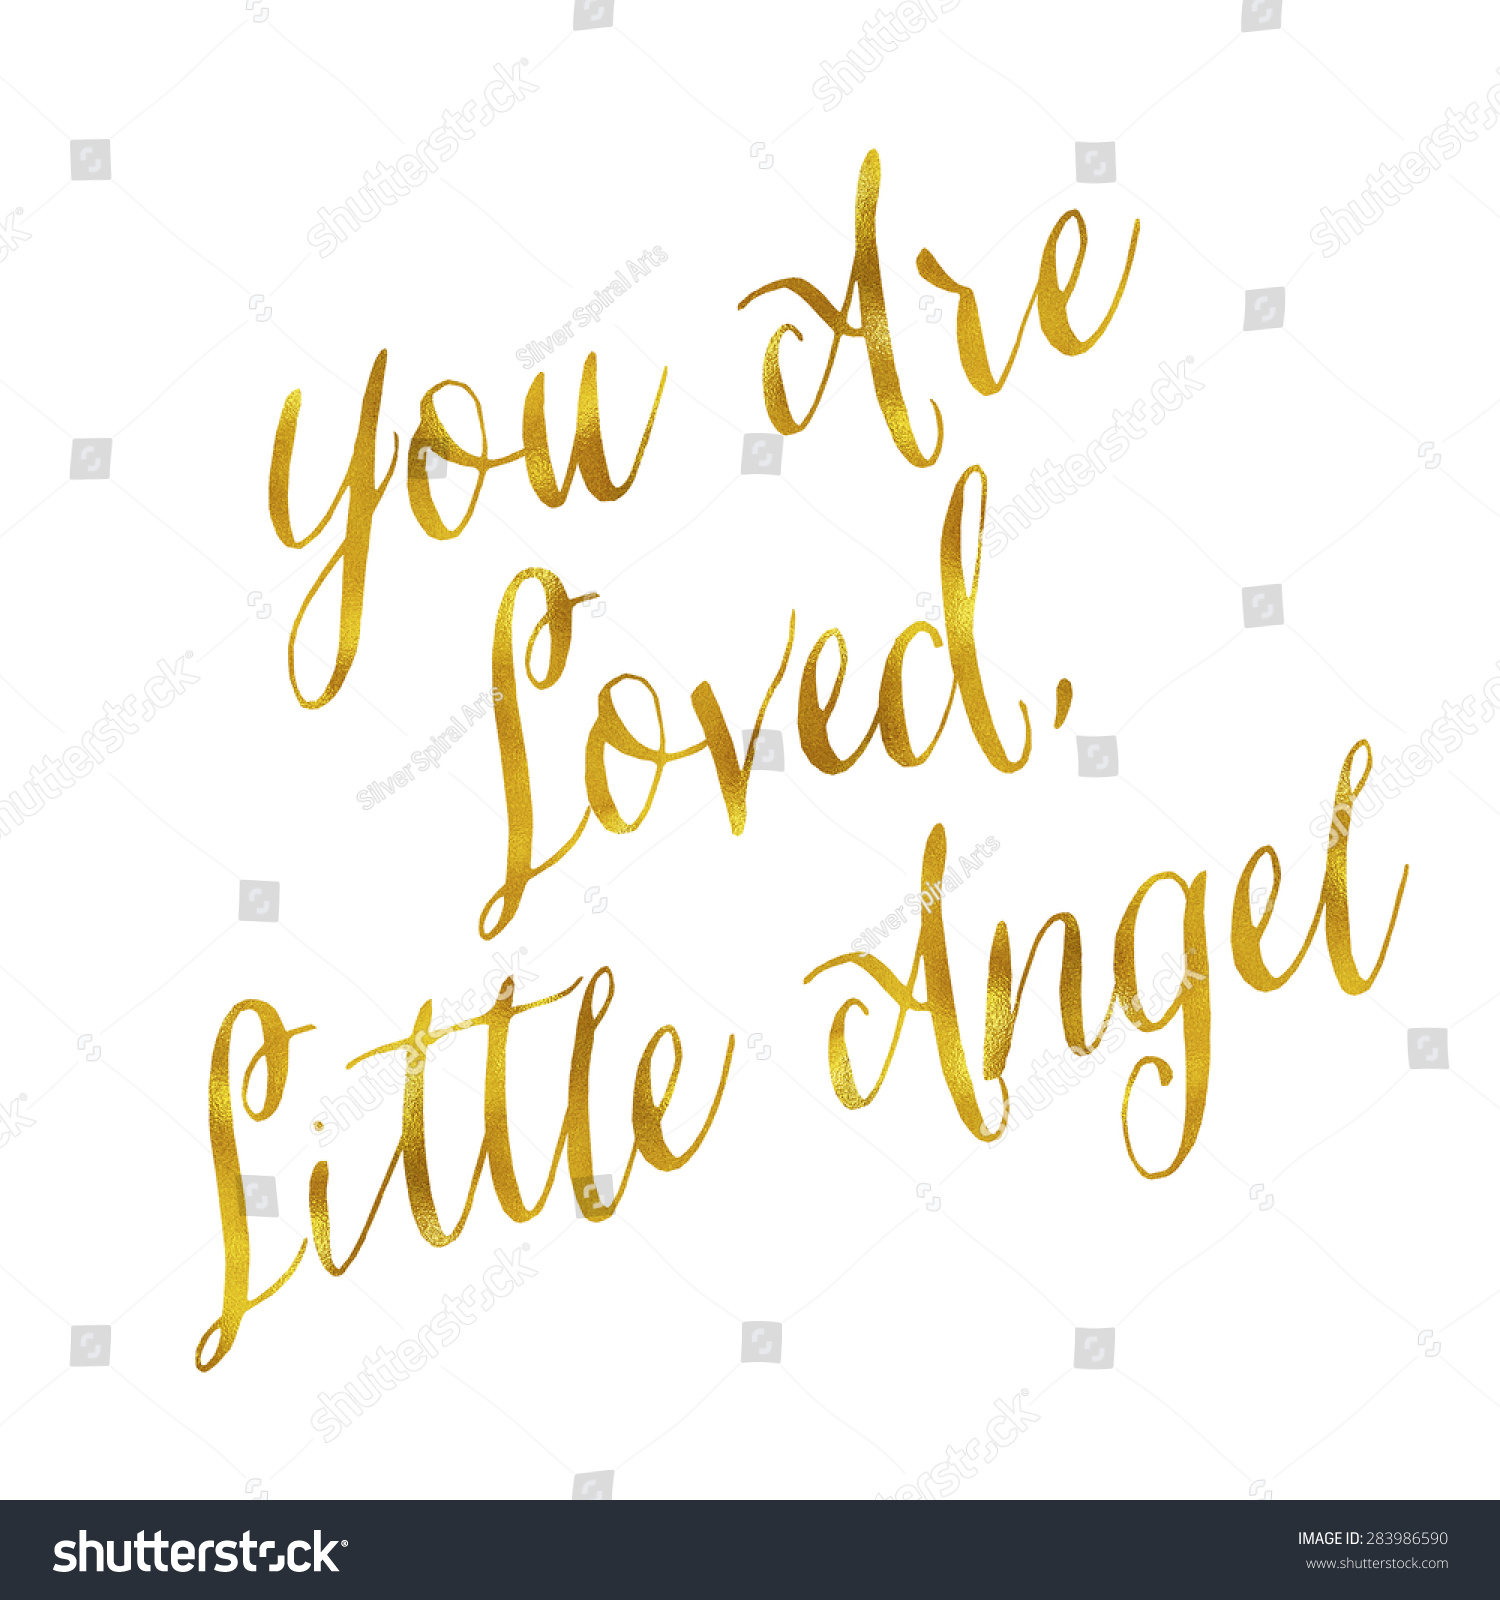 You Loved Little Angel Gold Faux Stock Illustration 283986590